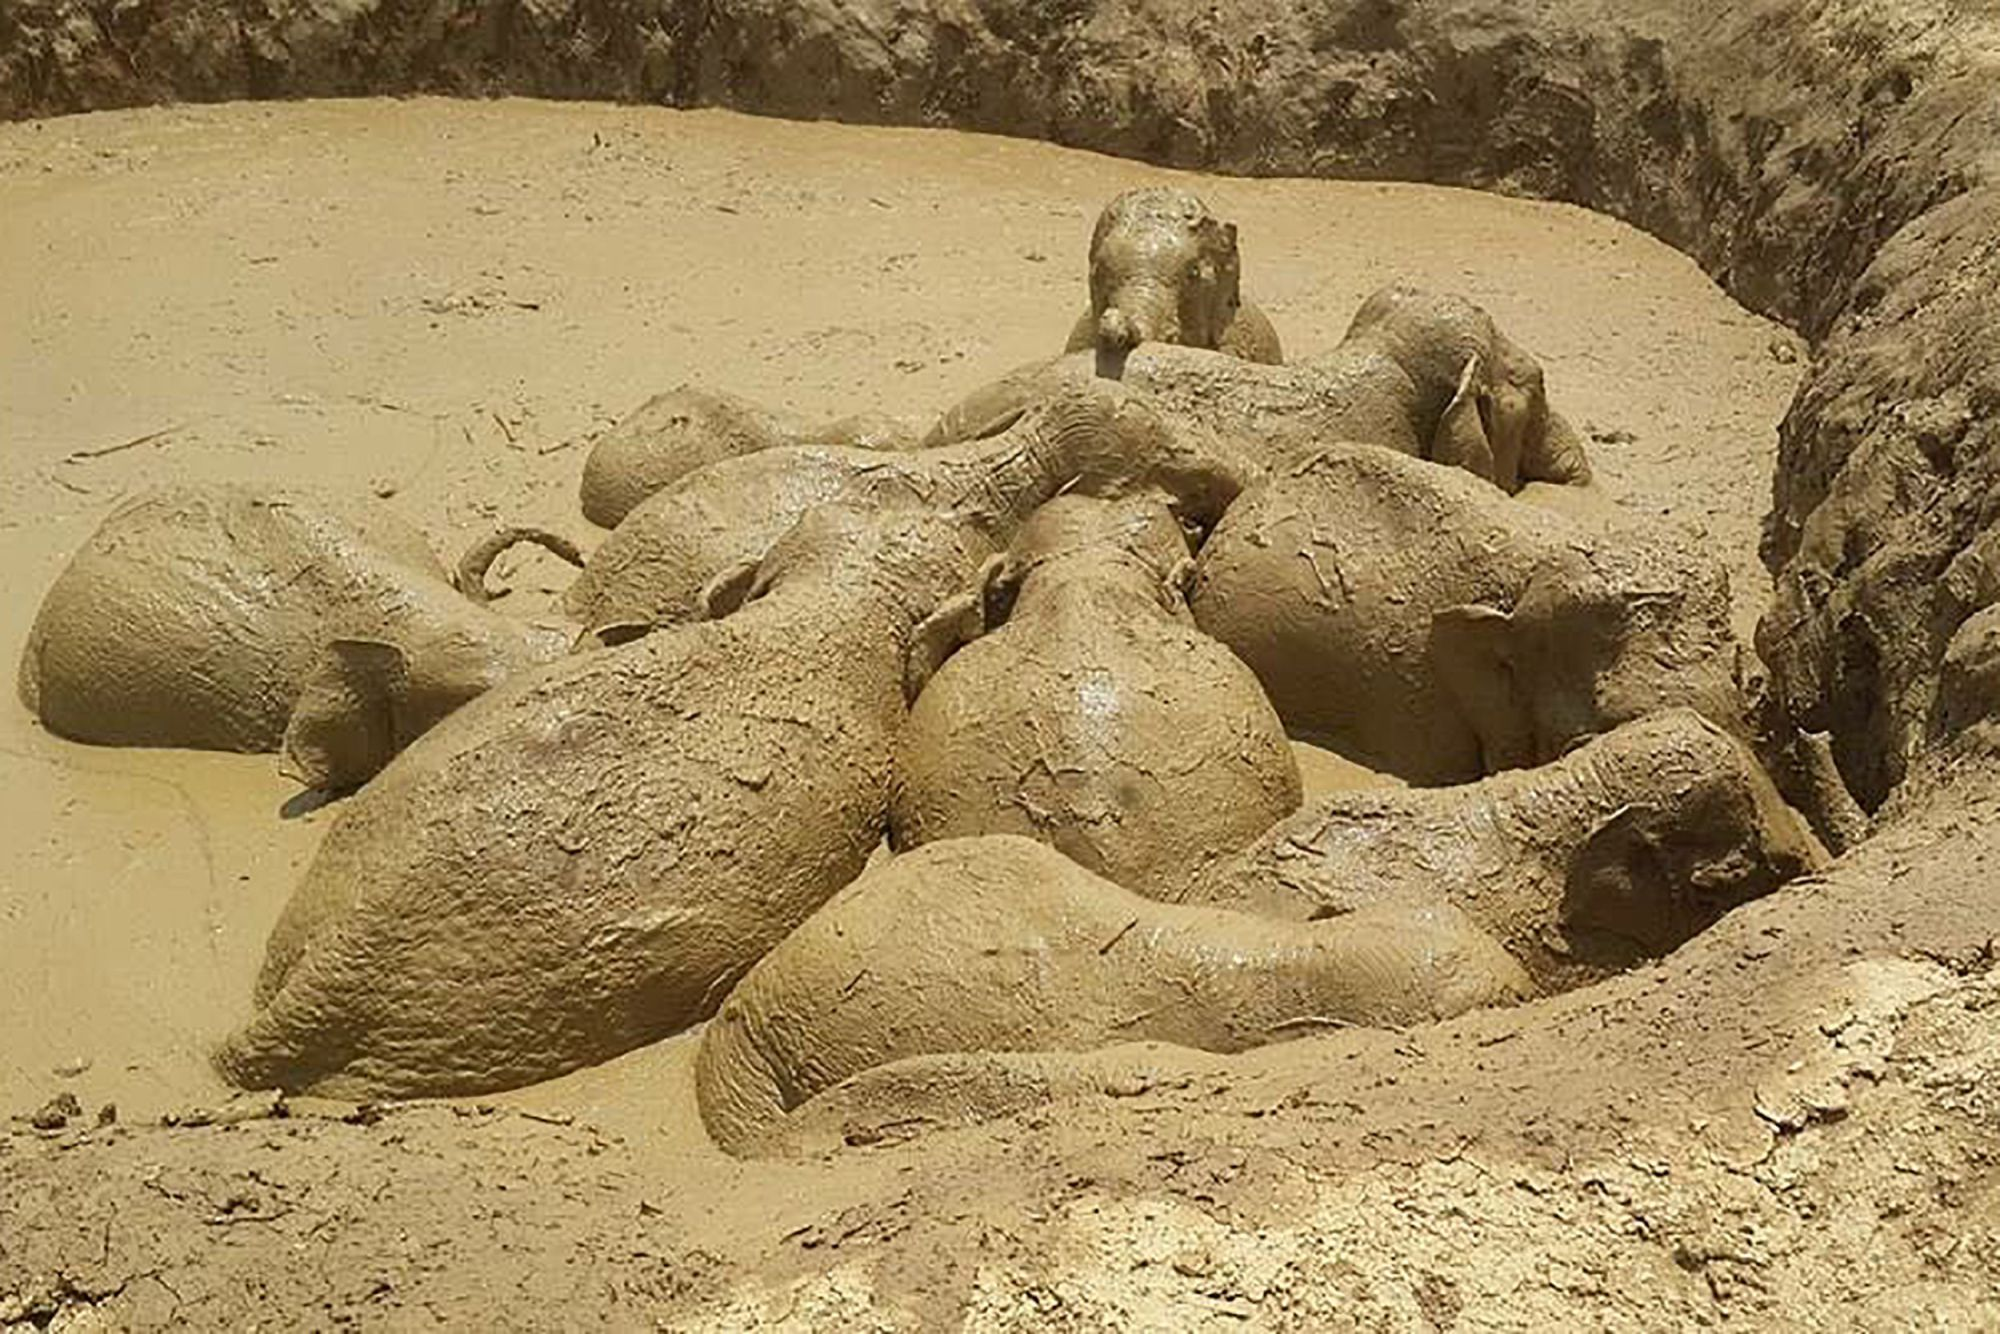 Image: Eleven Asian elephants saved from death in mud hole by grabbing ropes and cooperating with humans